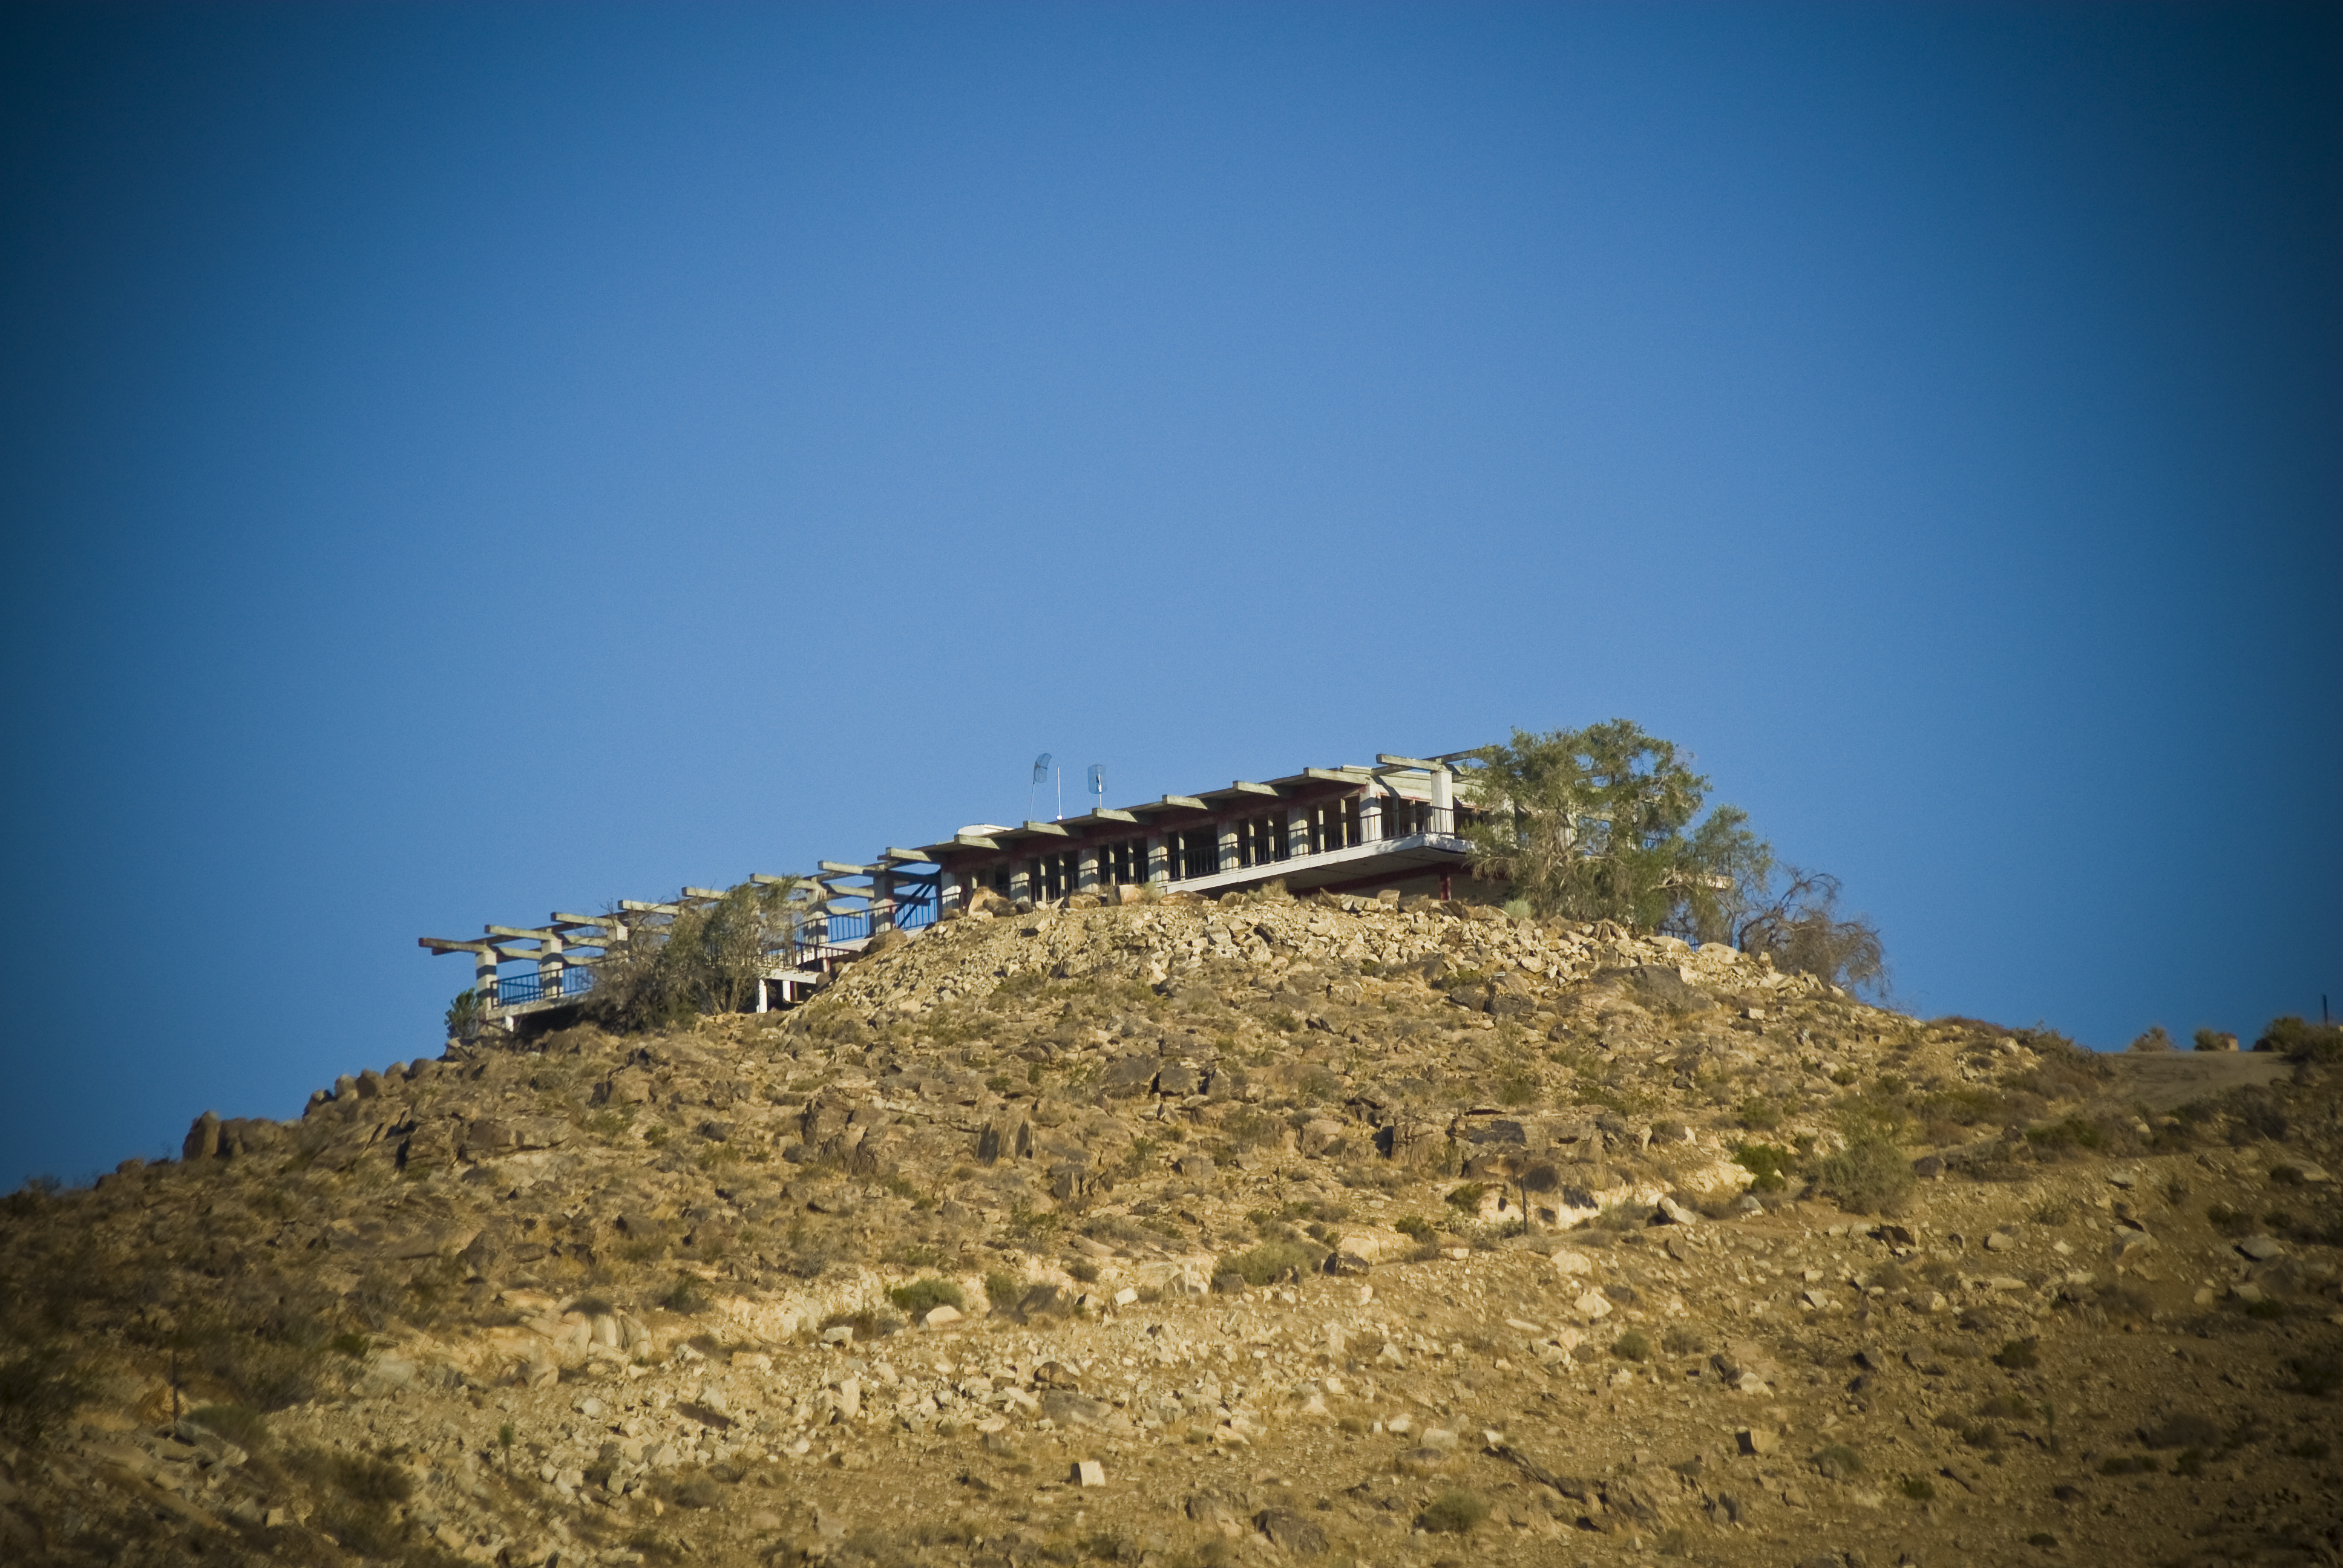 Apple valley inn abandoned house on the hill in apple - Swimming pool contractors apple valley ca ...